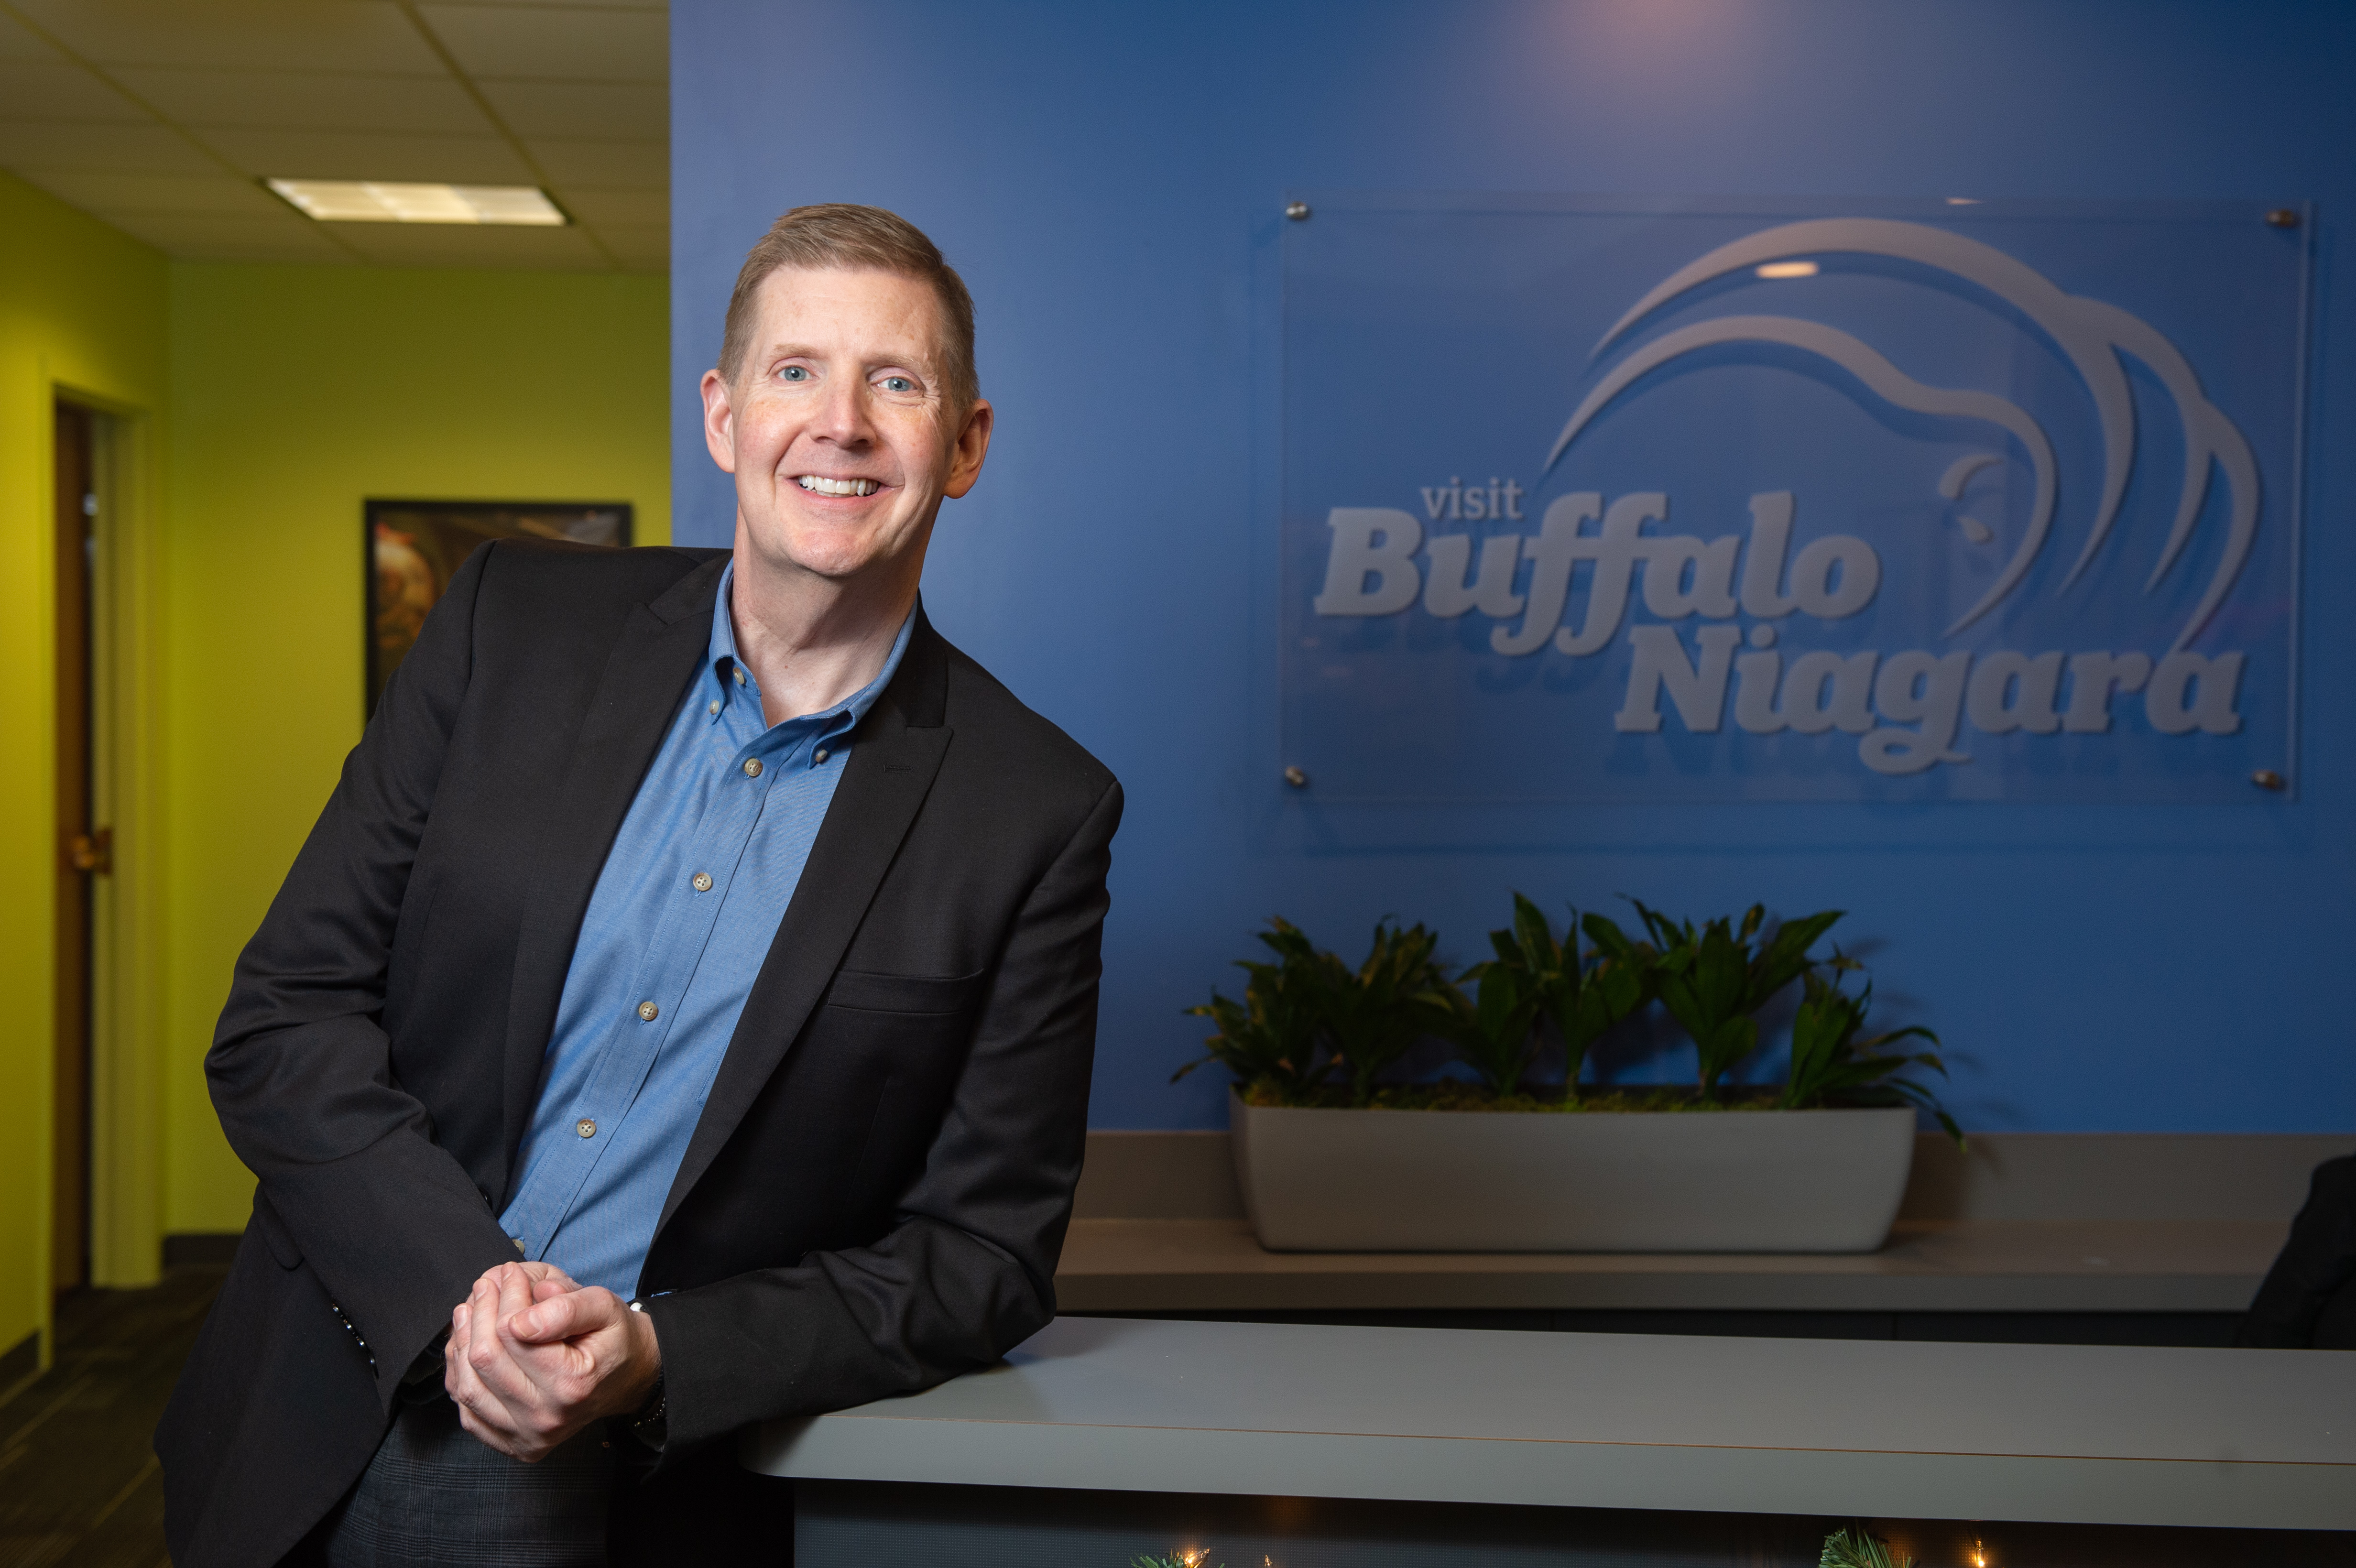 Happening Here: Visit Buffalo Niagara president discusses proposed new convention center